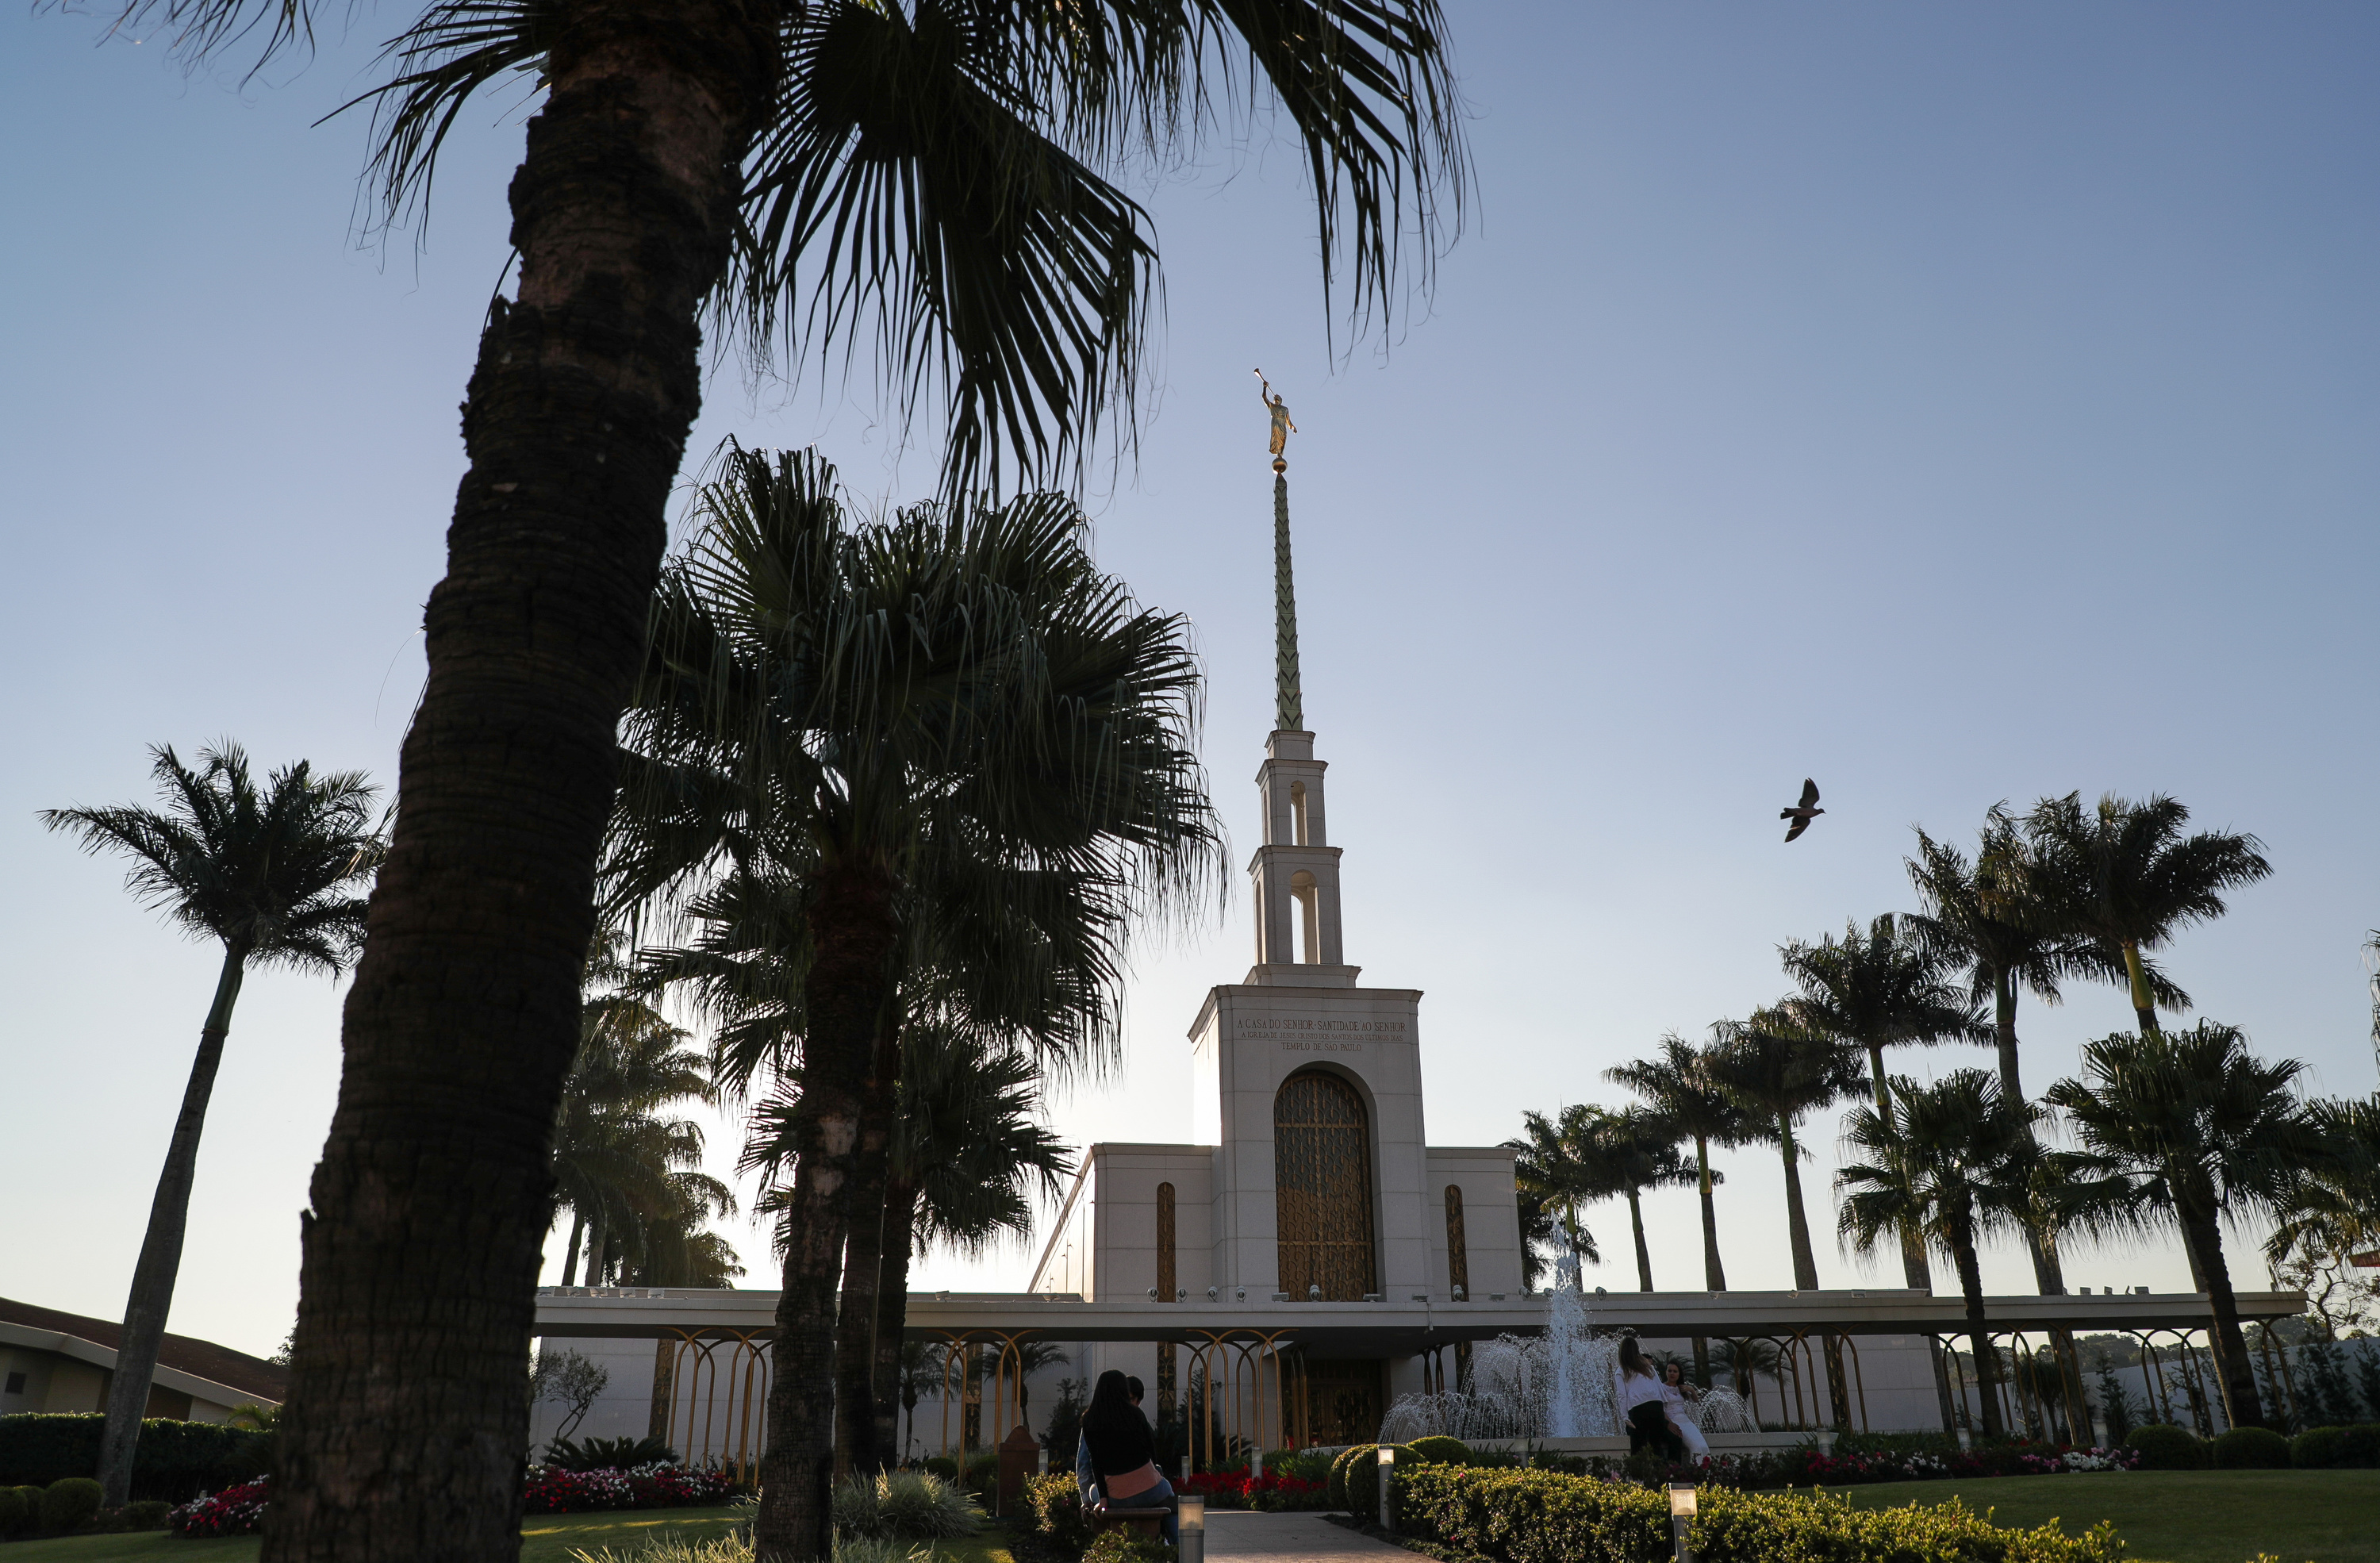 The LDS Church's São Paulo Temple is seen at sunset in São Paulo, Brazil on Tuesday, May 22, 2018.